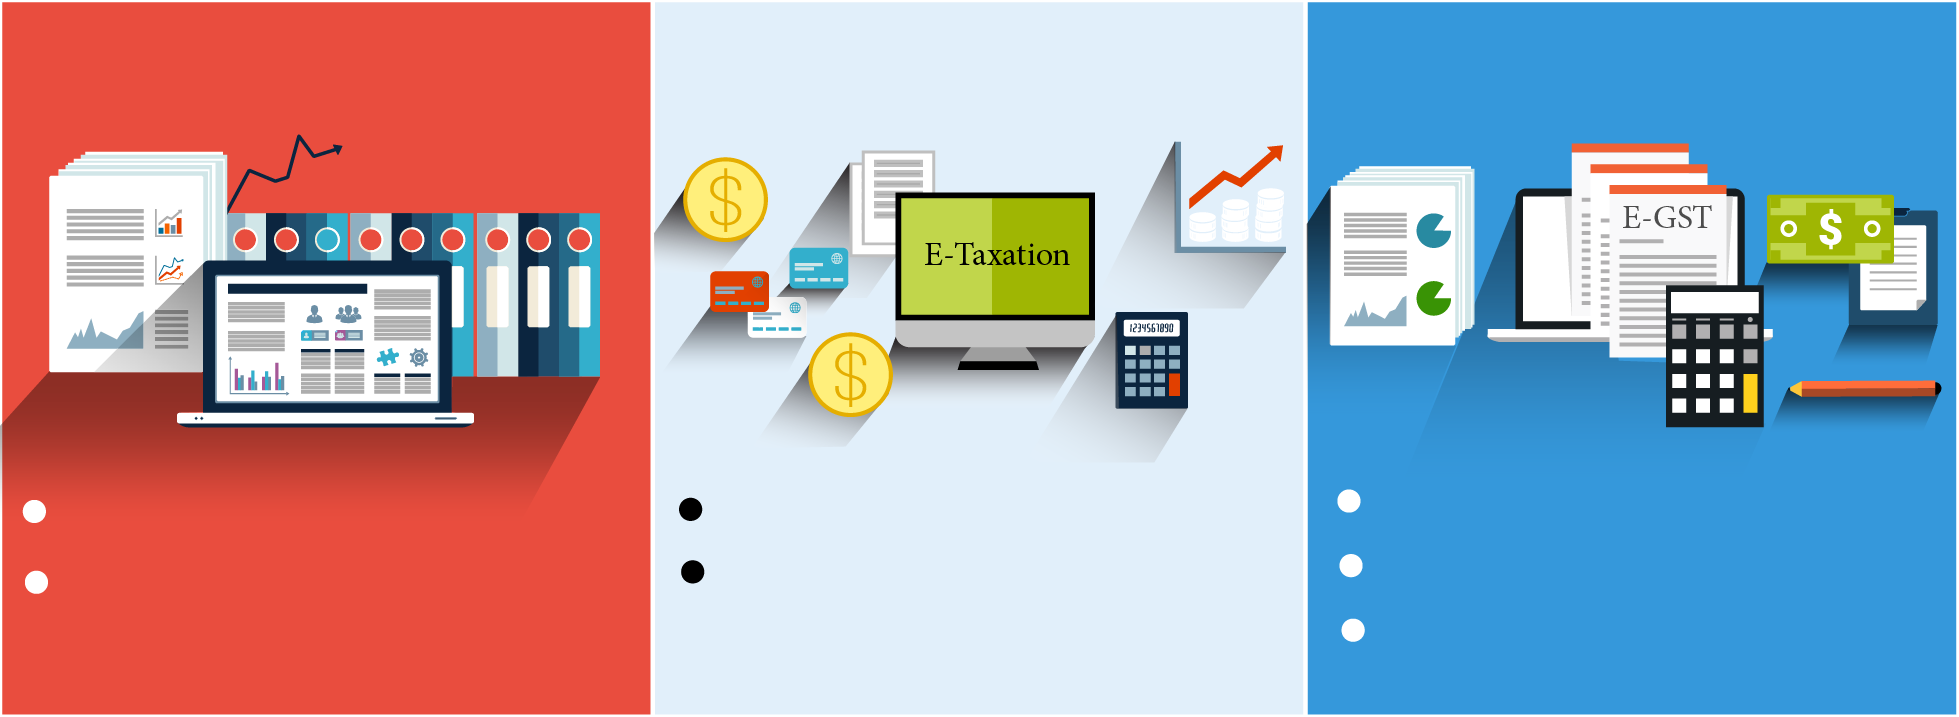 E-Accounts E-Taxation E-GST Training in Delhi